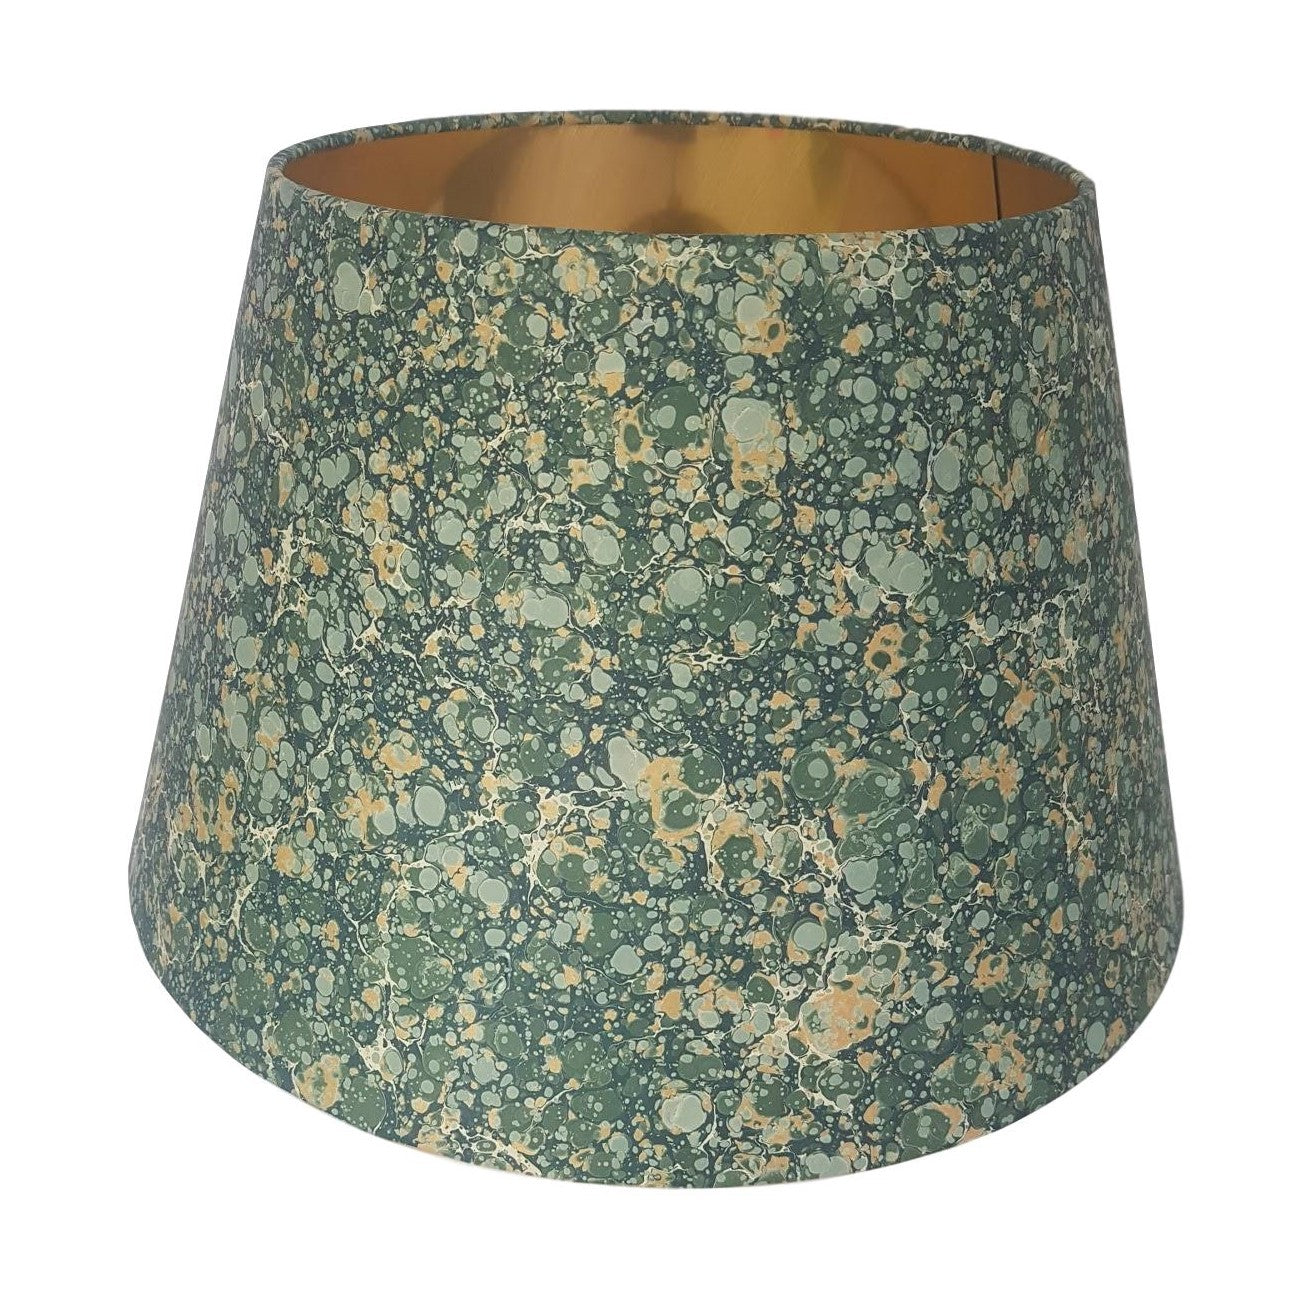 Munro and Kerr green and gold marbled paper for an empire lampshade